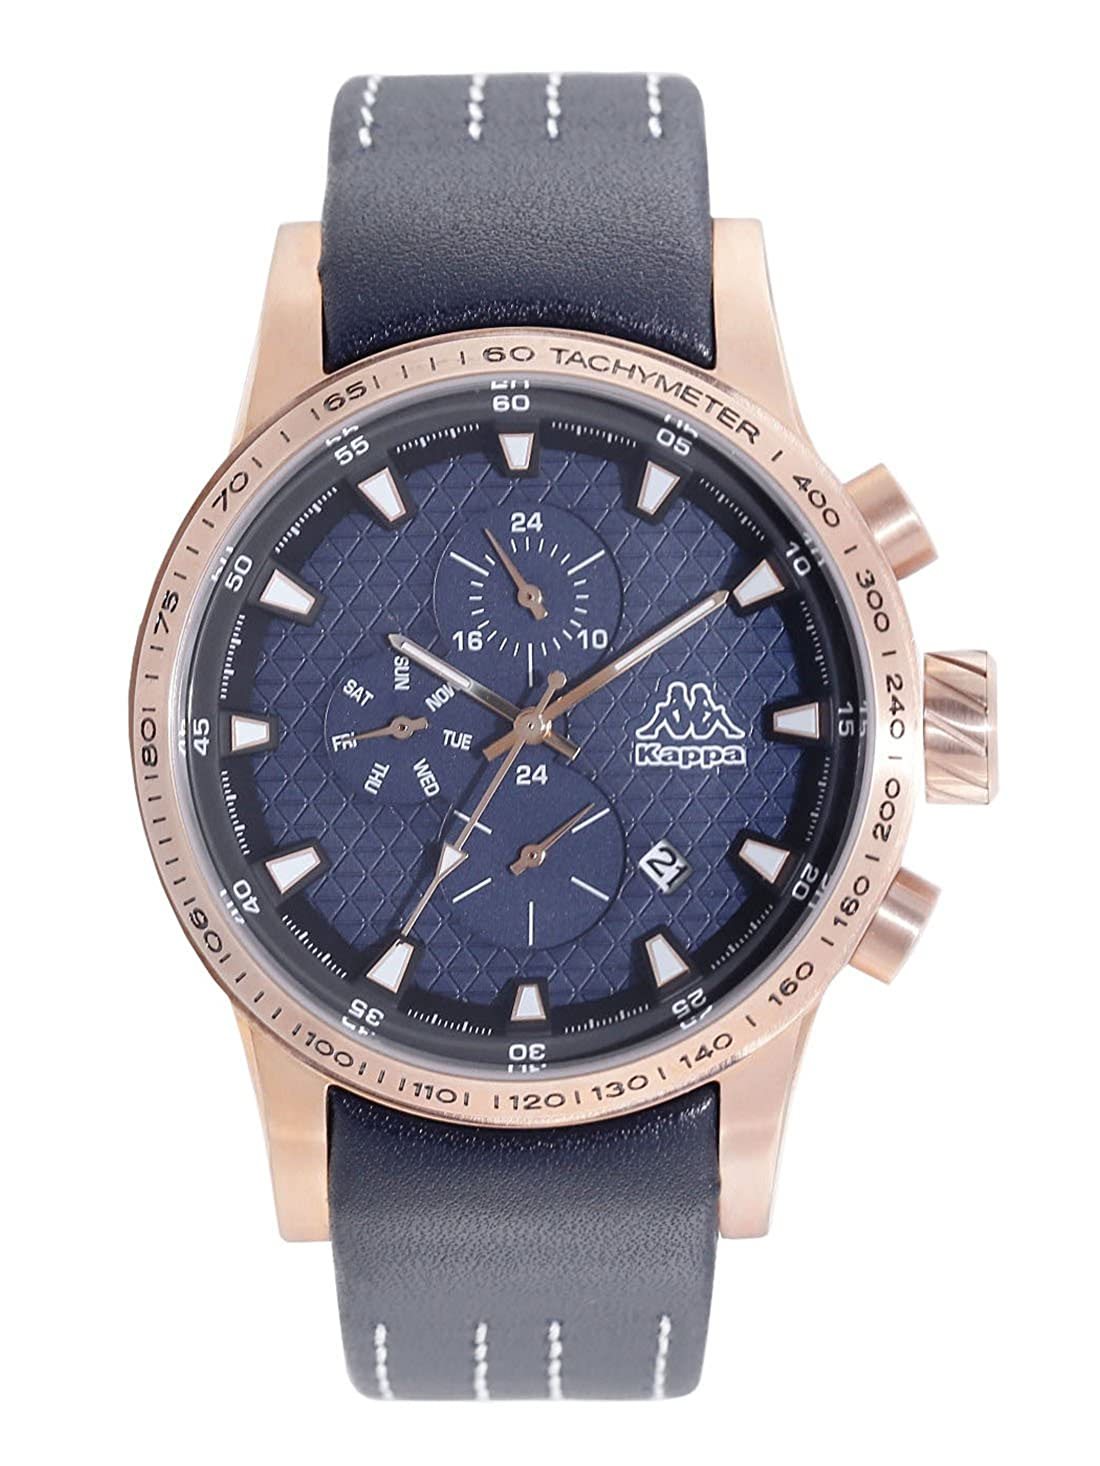 Kappa men's watch with a leather strap, date, weekday, GMT KP 1434M E